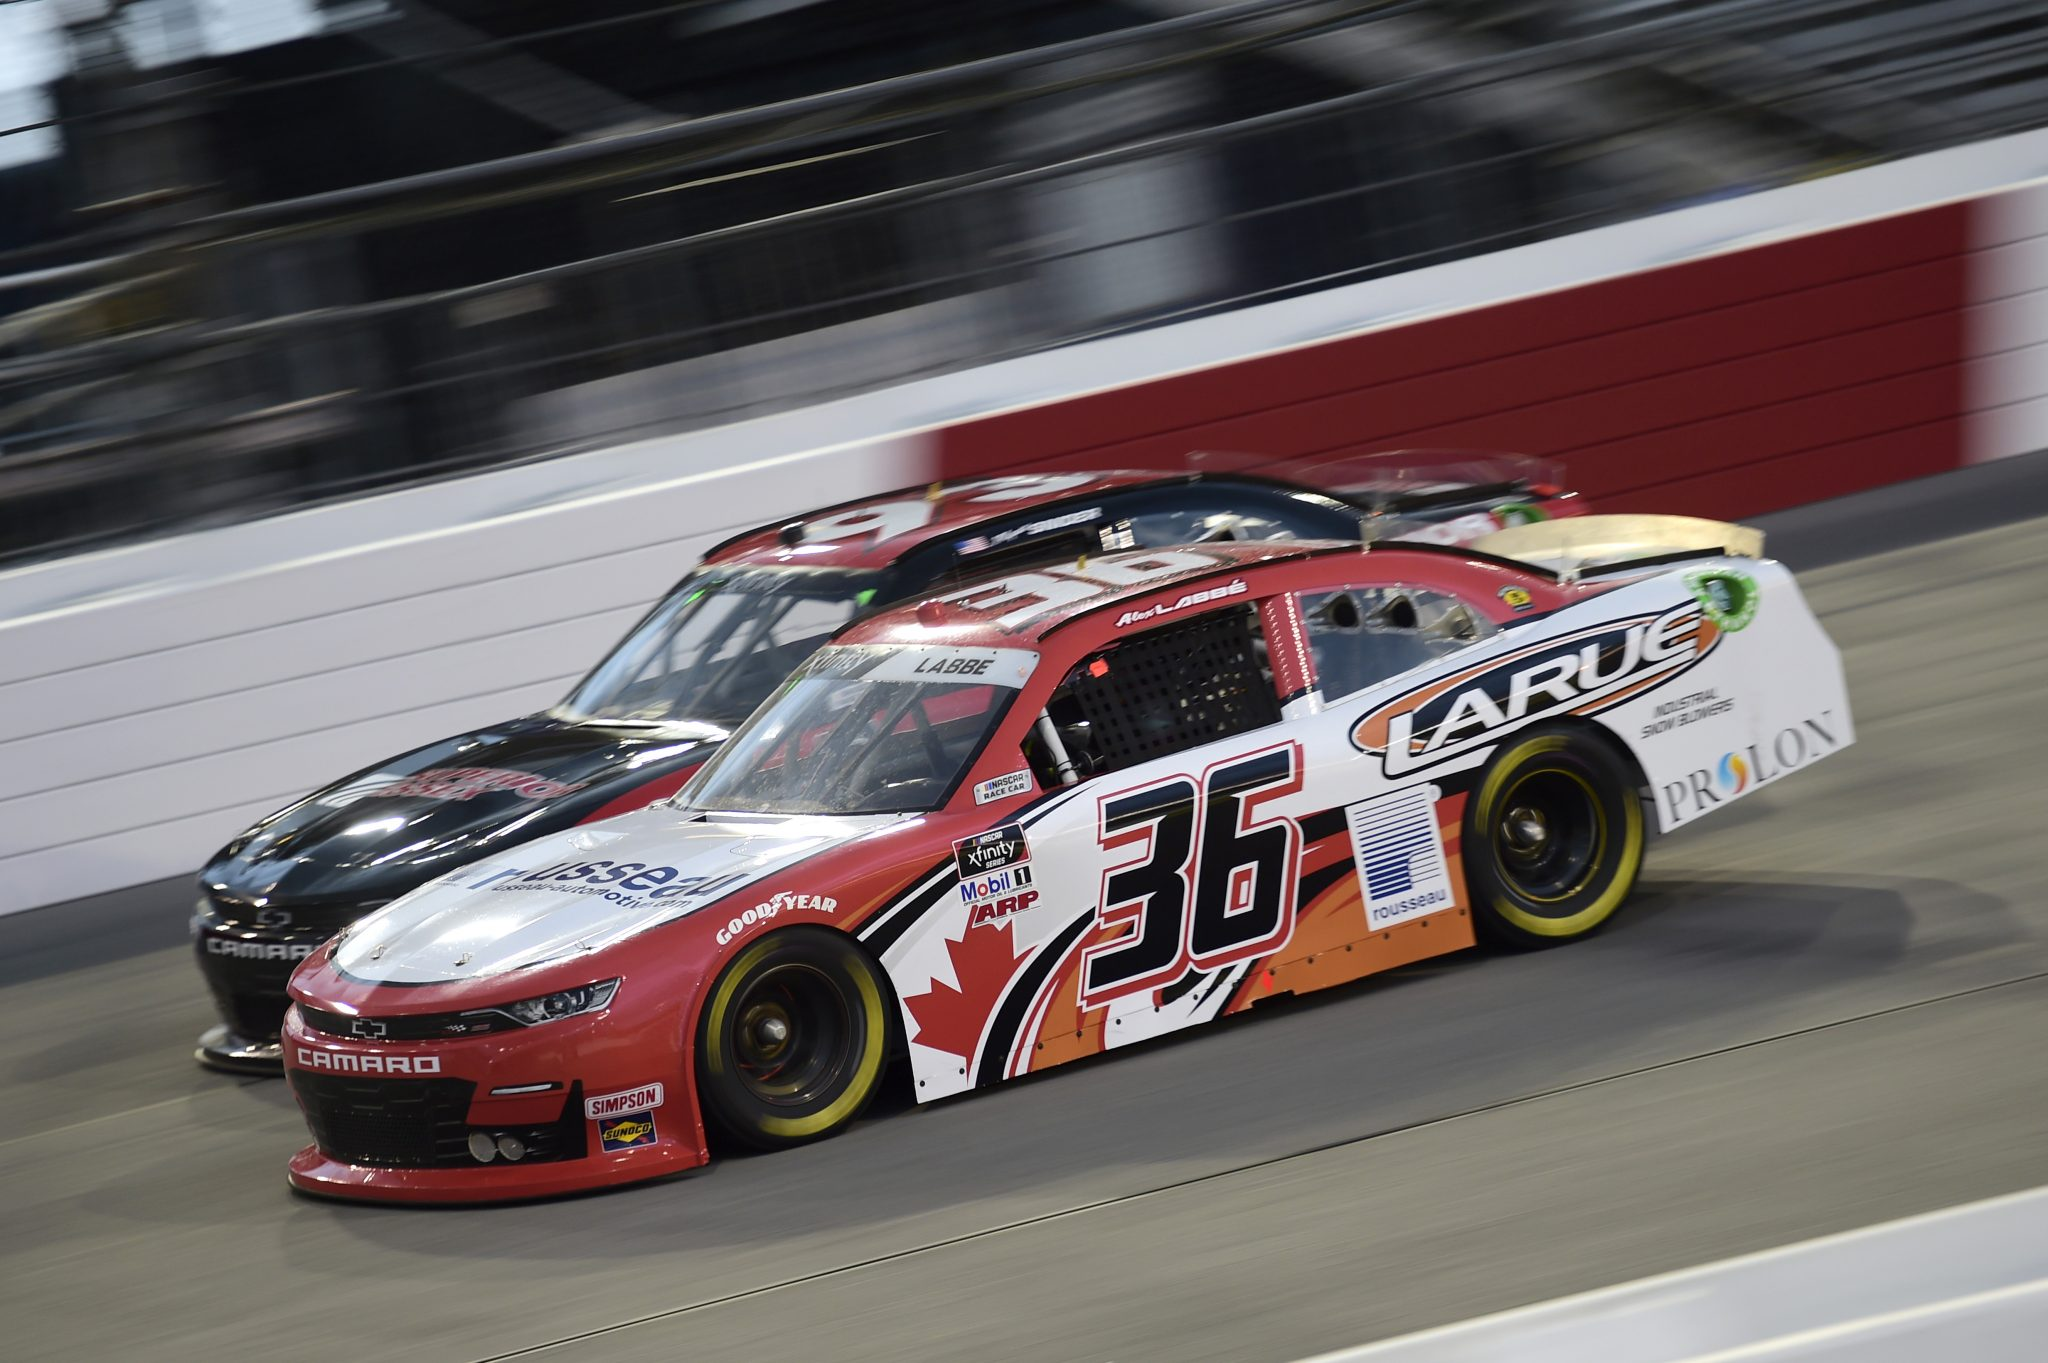 RICHMOND, VIRGINIA - SEPTEMBER 11: Alex Labbe, driver of the #36 DGM Racing Chevrolet, drives during the NASCAR Xfinity Series Go Bowling 250 at Richmond Raceway on September 11, 2020 in Richmond, Virginia. (Photo by Jared C. Tilton/Getty Images) | Getty Images